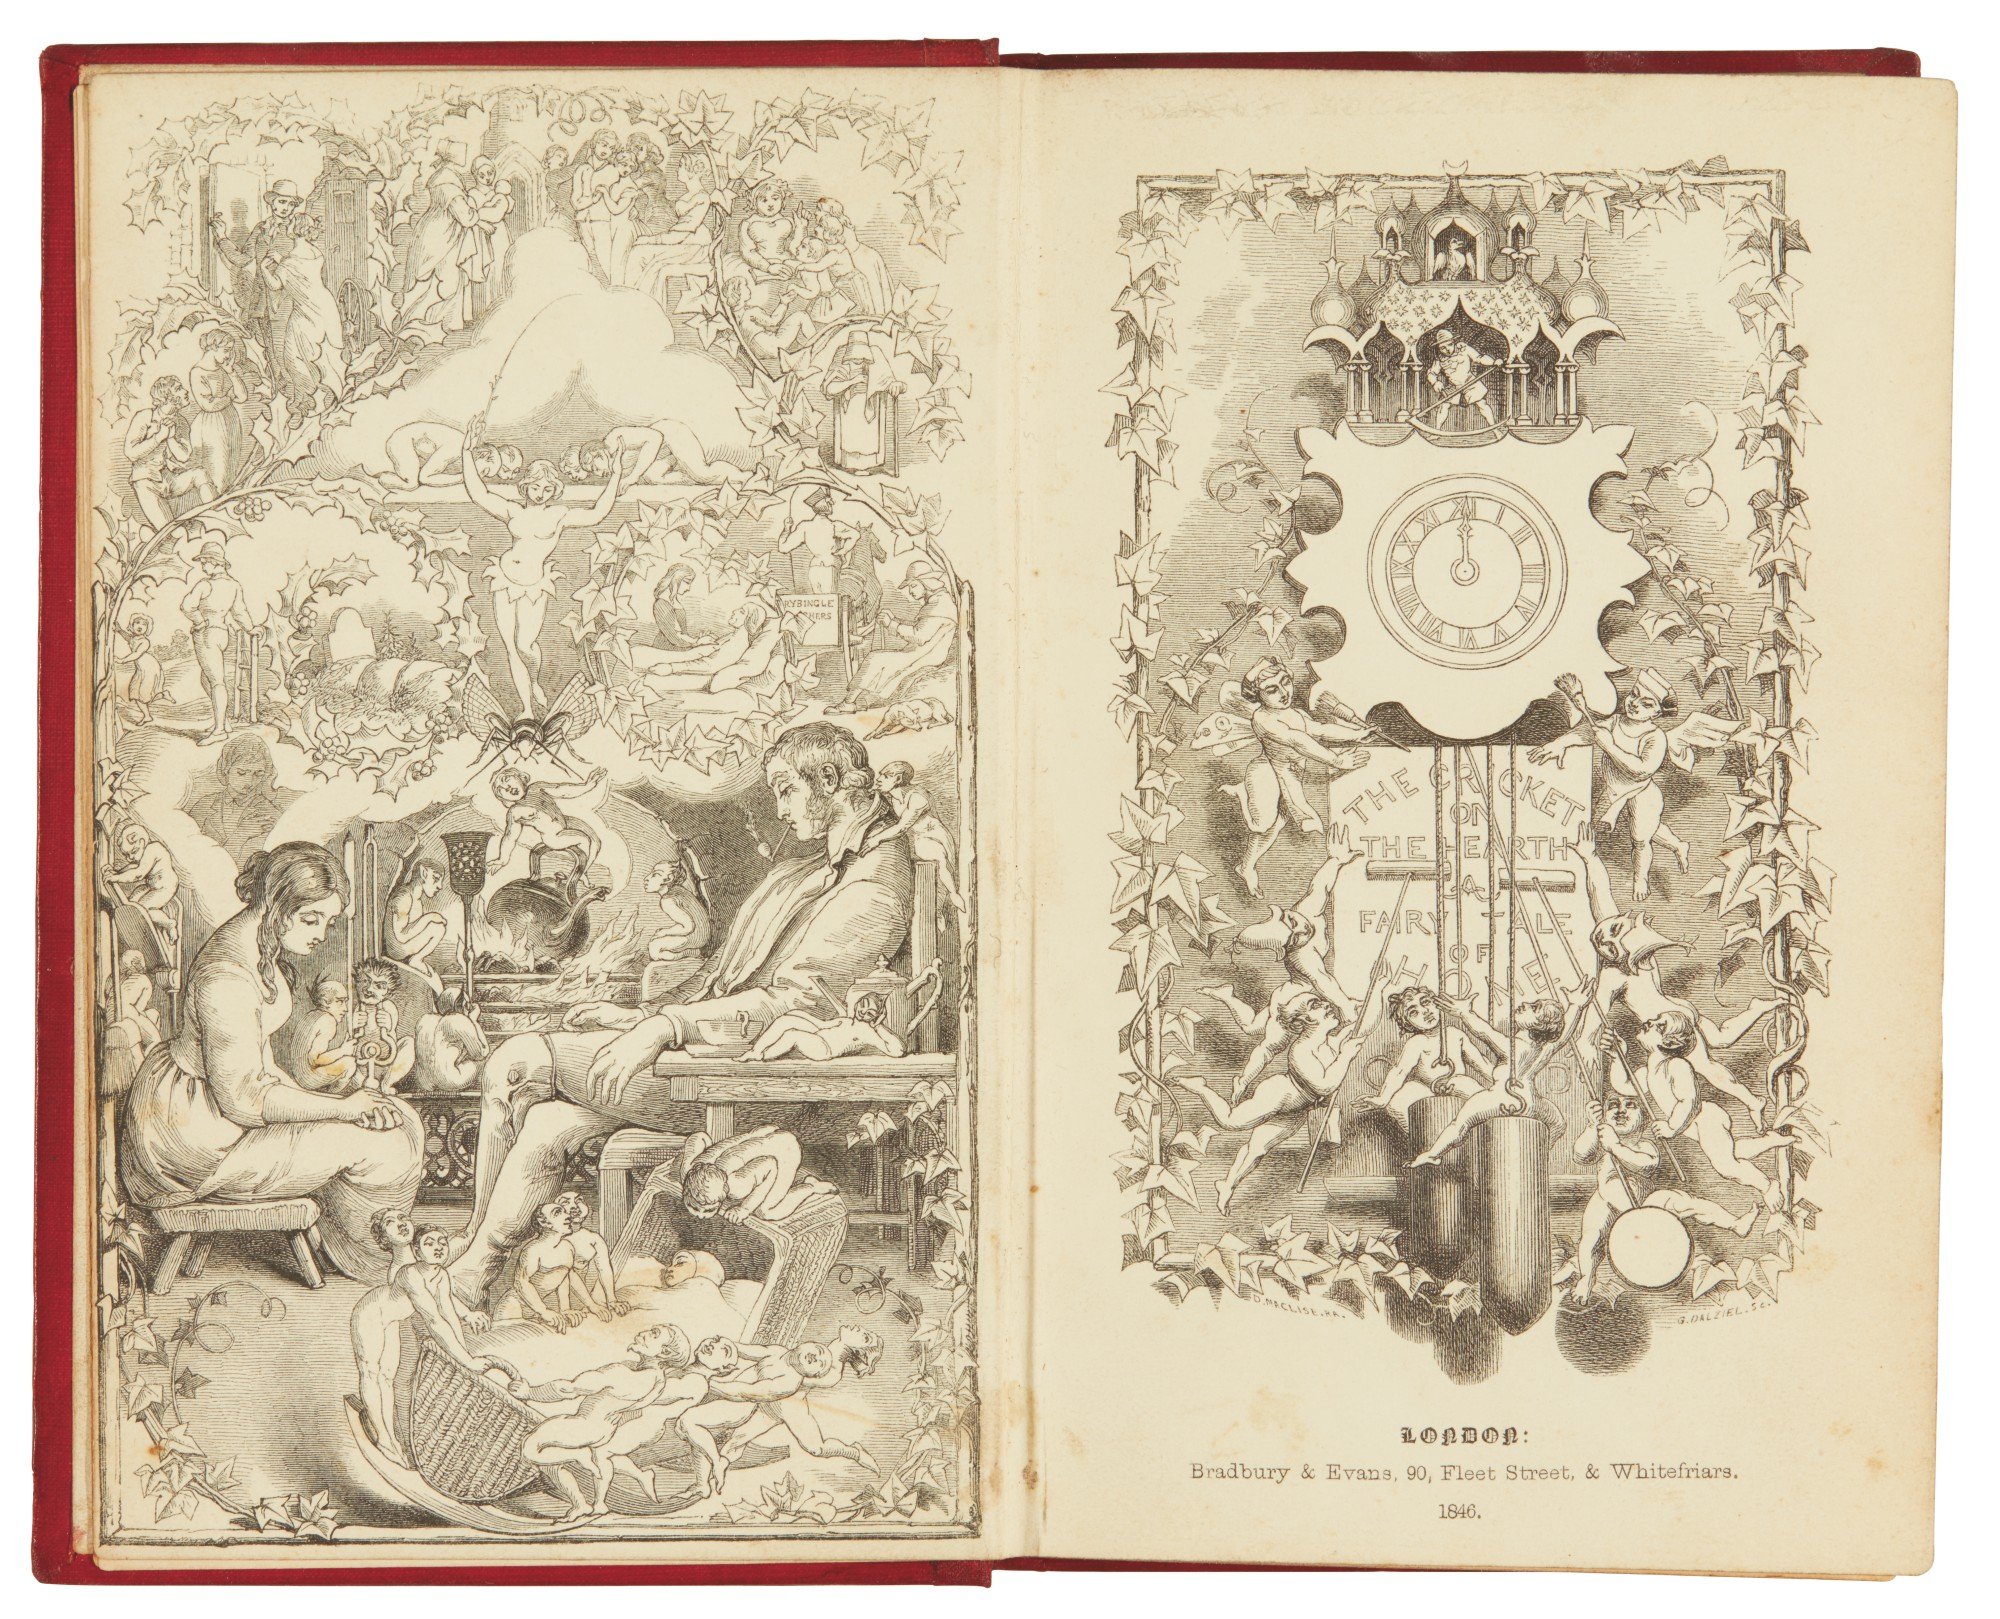 Dickens, The Cricket on the Hearth, 1846 [1845], first edition